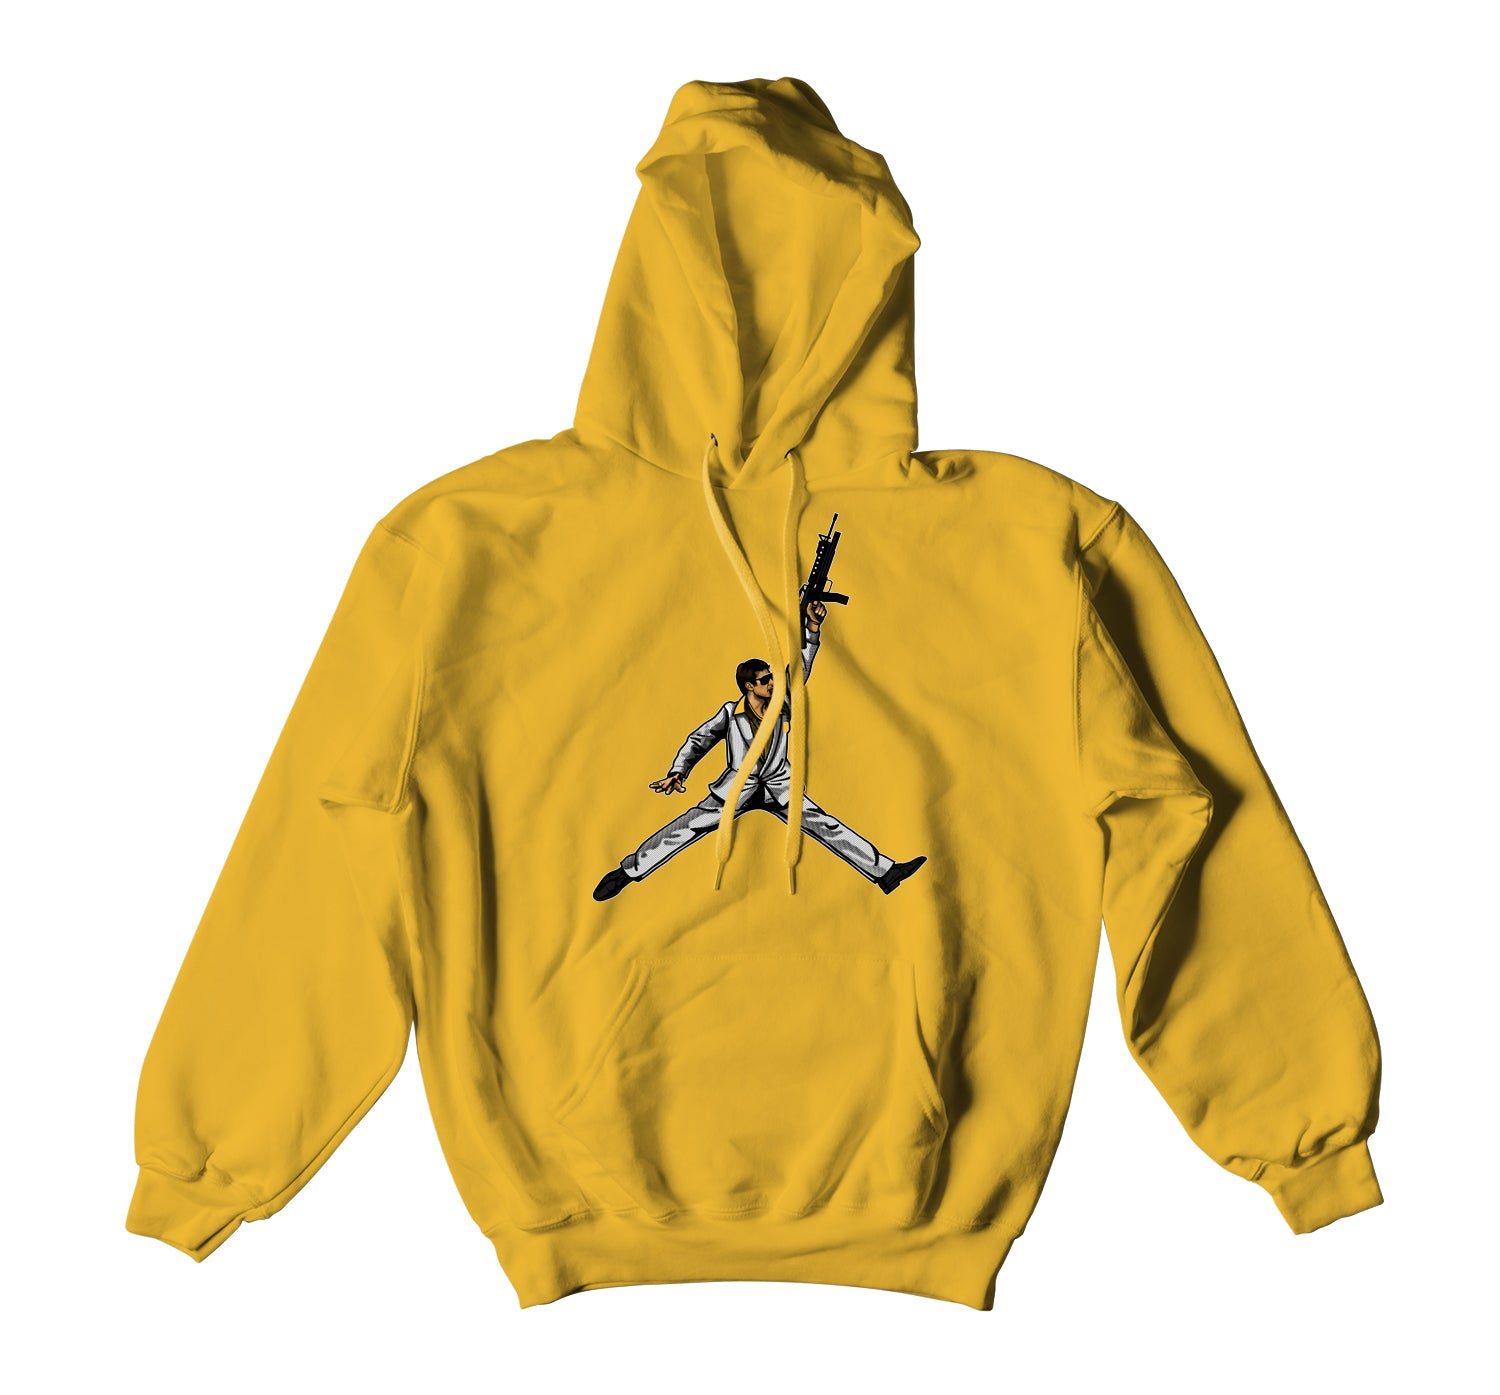 hoody to match Jordan 9 uni gold sneaker collection